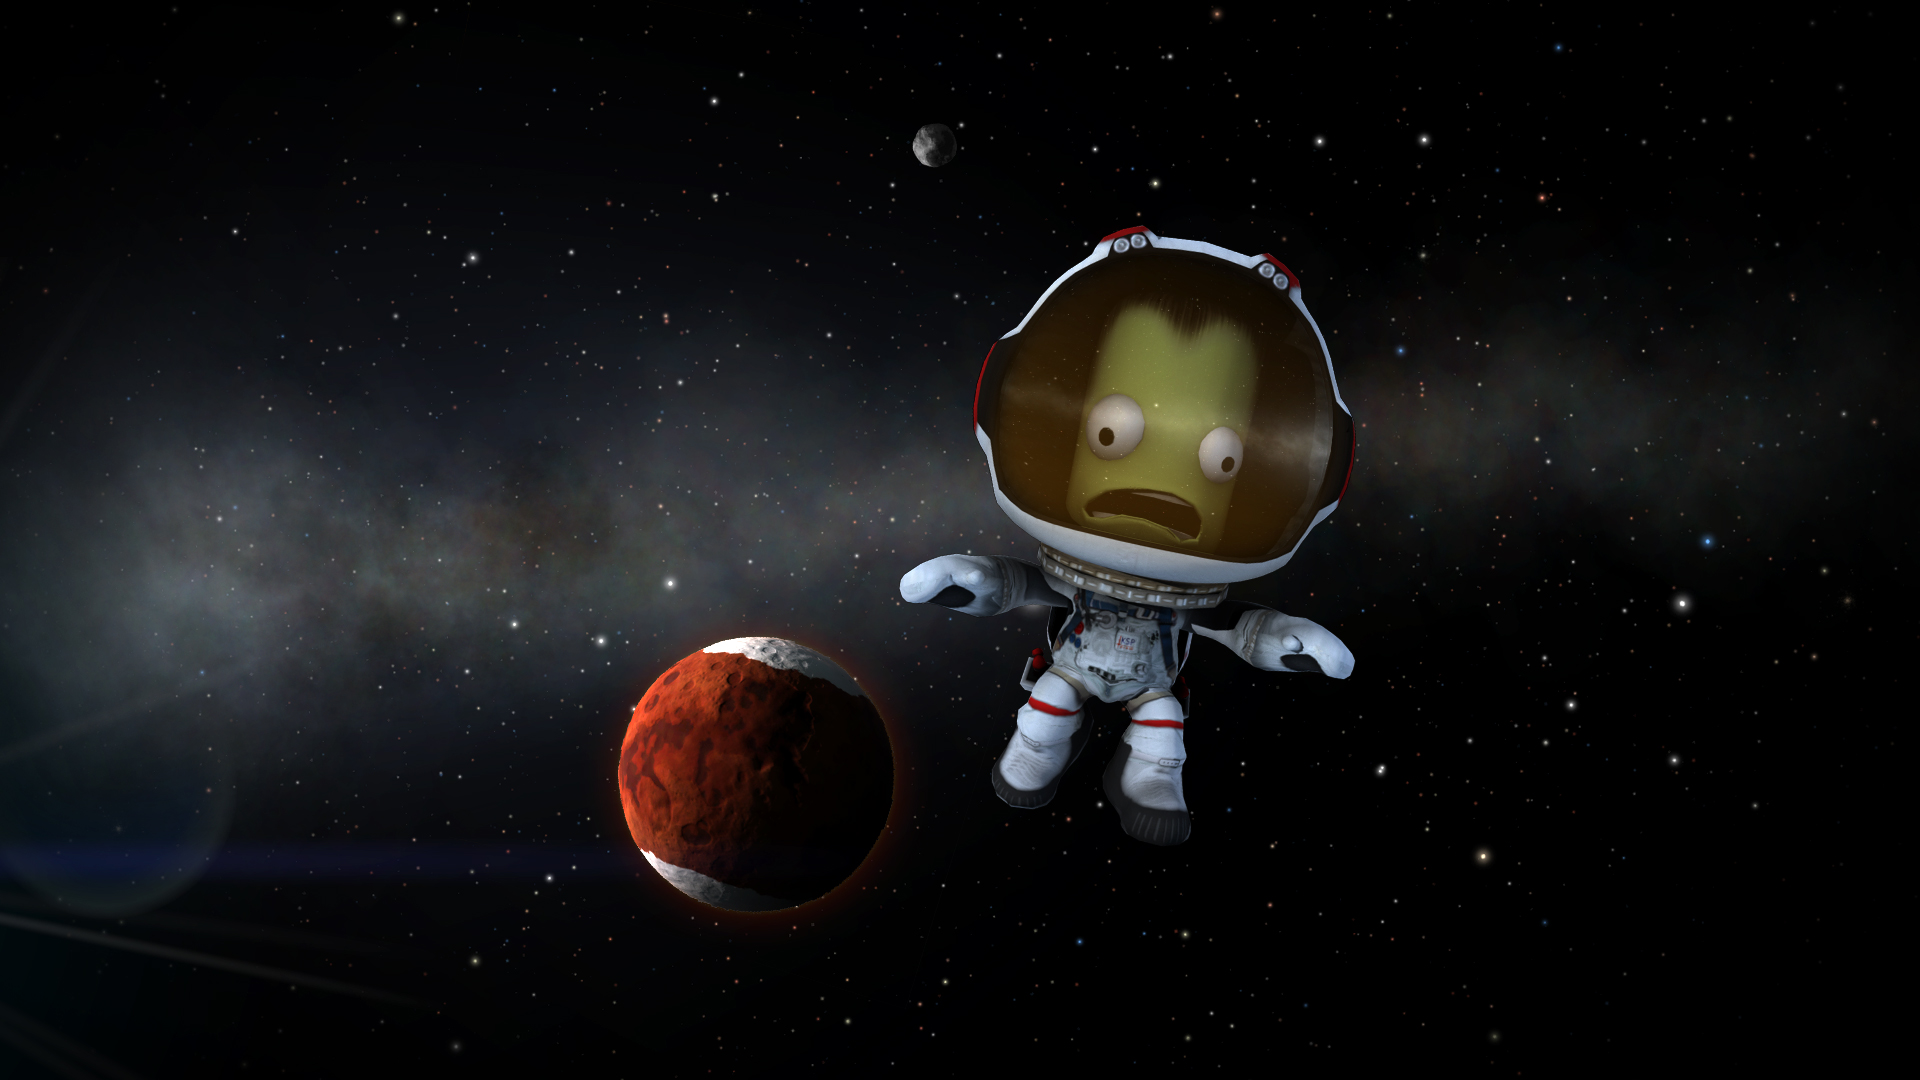 kerbal space program loading screen - photo #22